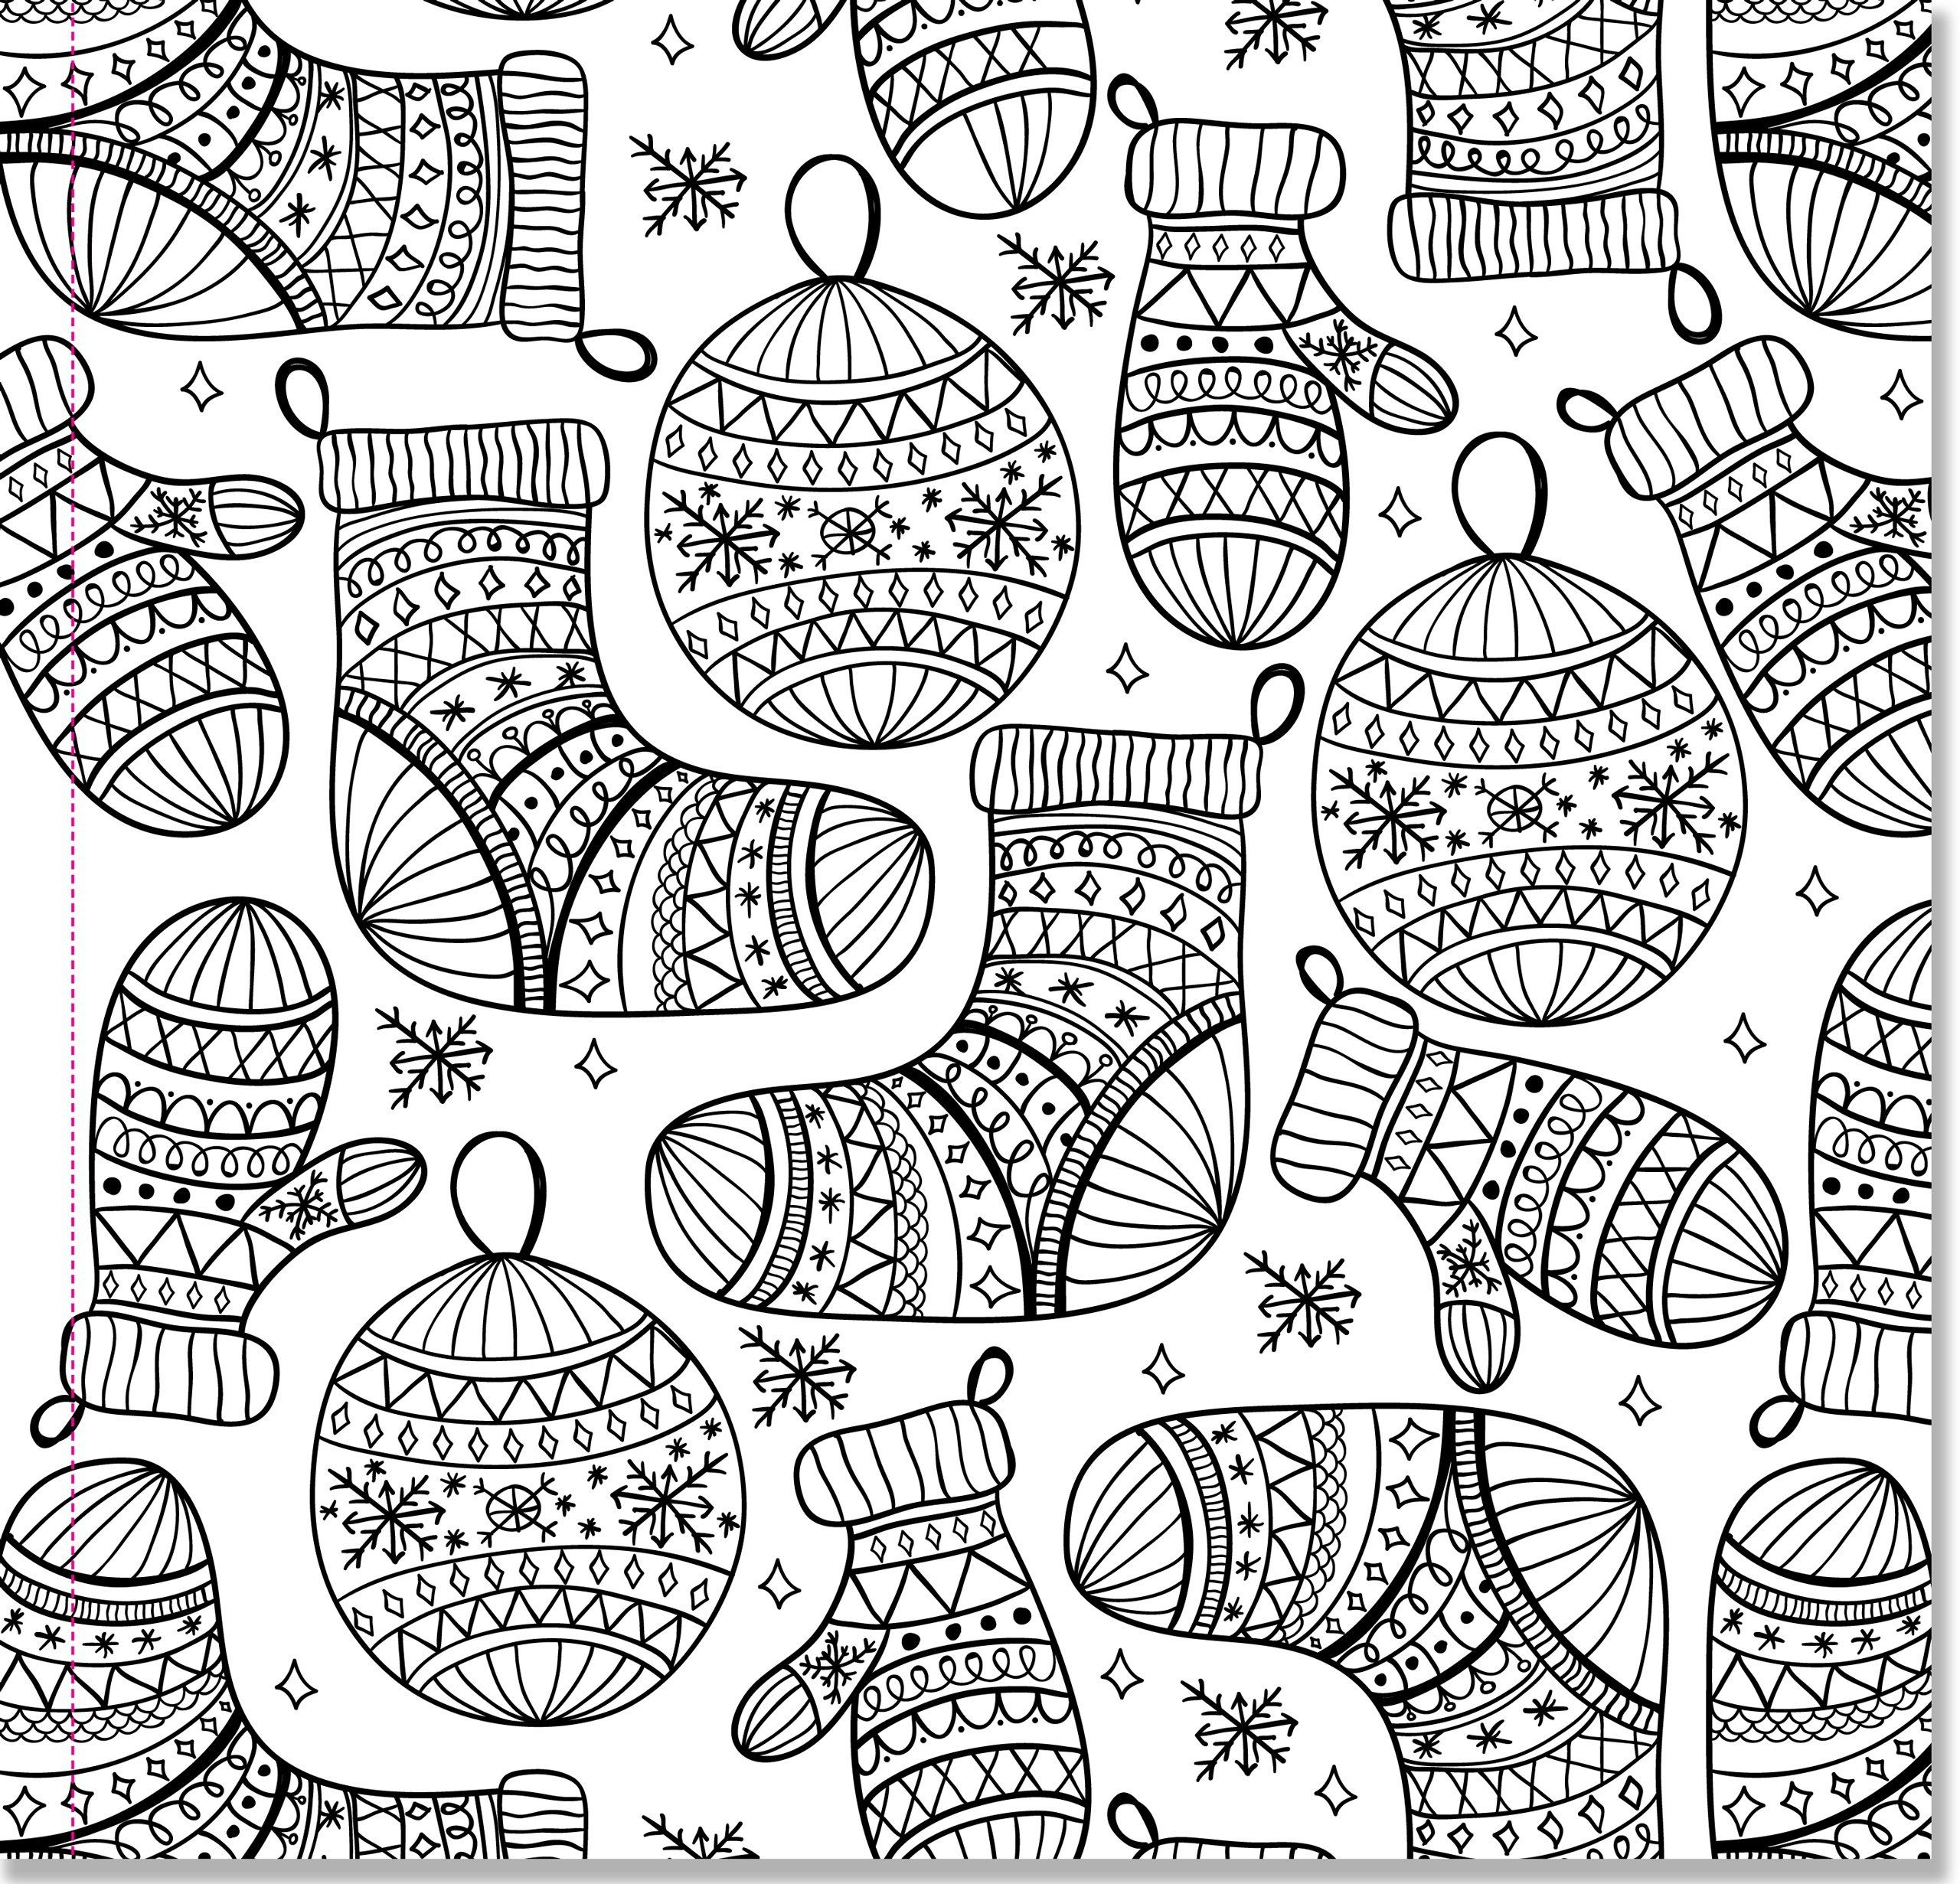 Free Printable Christmas Coloring Book Pages With For Adults To Print